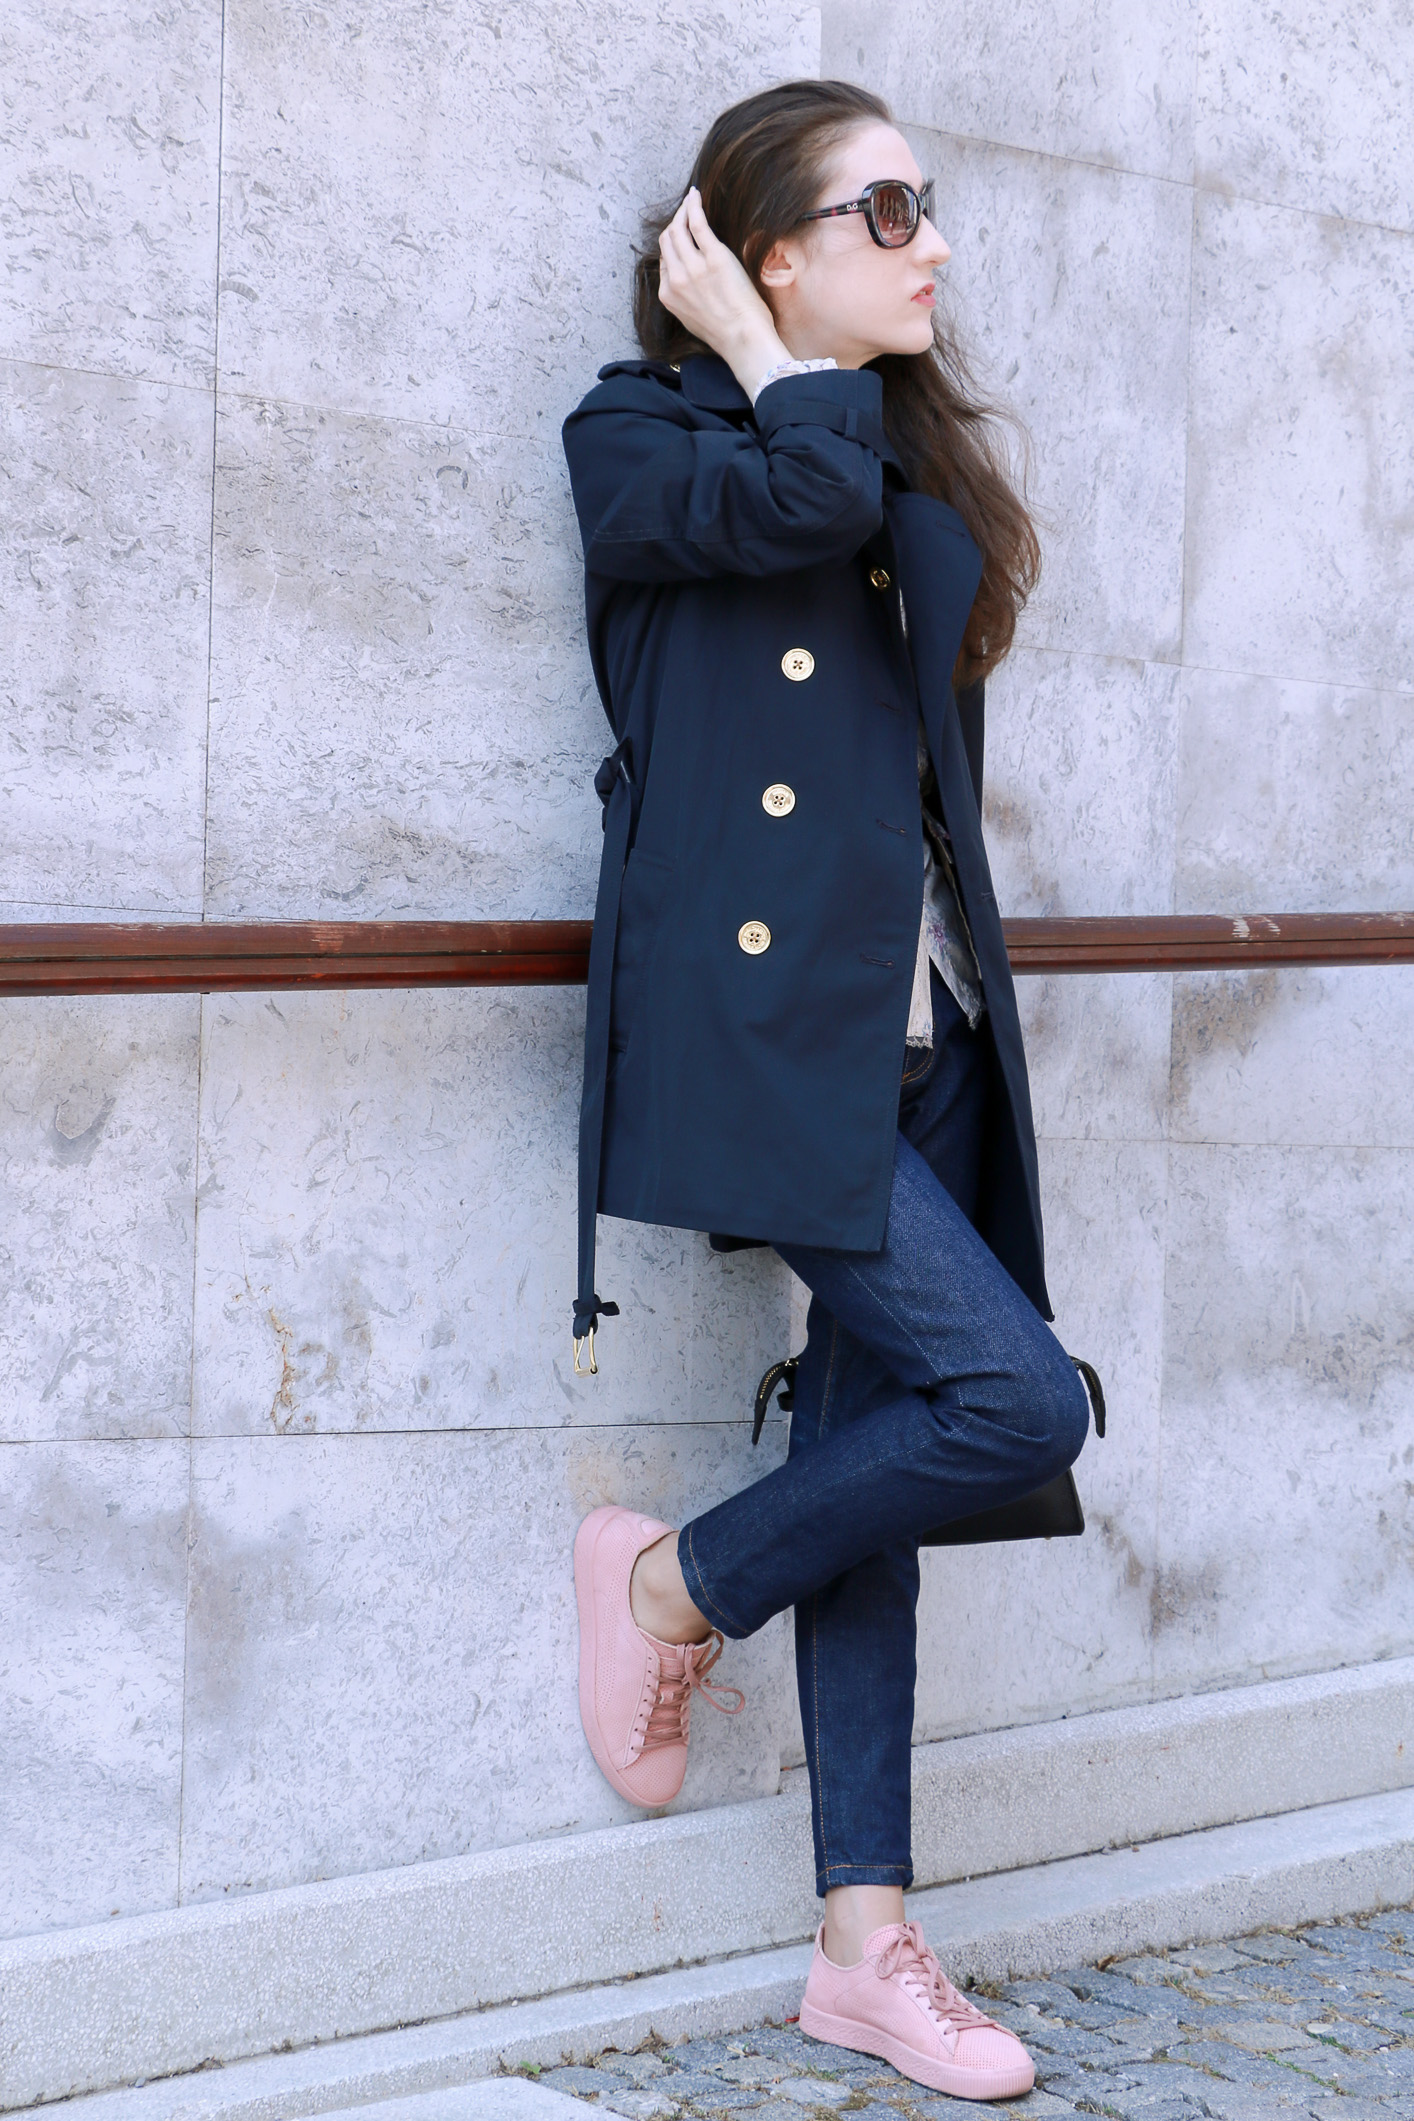 Fashion blogger Veronika Lipar of Brunette From Wall Street sharing her spring chic business style in pale pink sneakers and dark blue jeans and blue trench coat